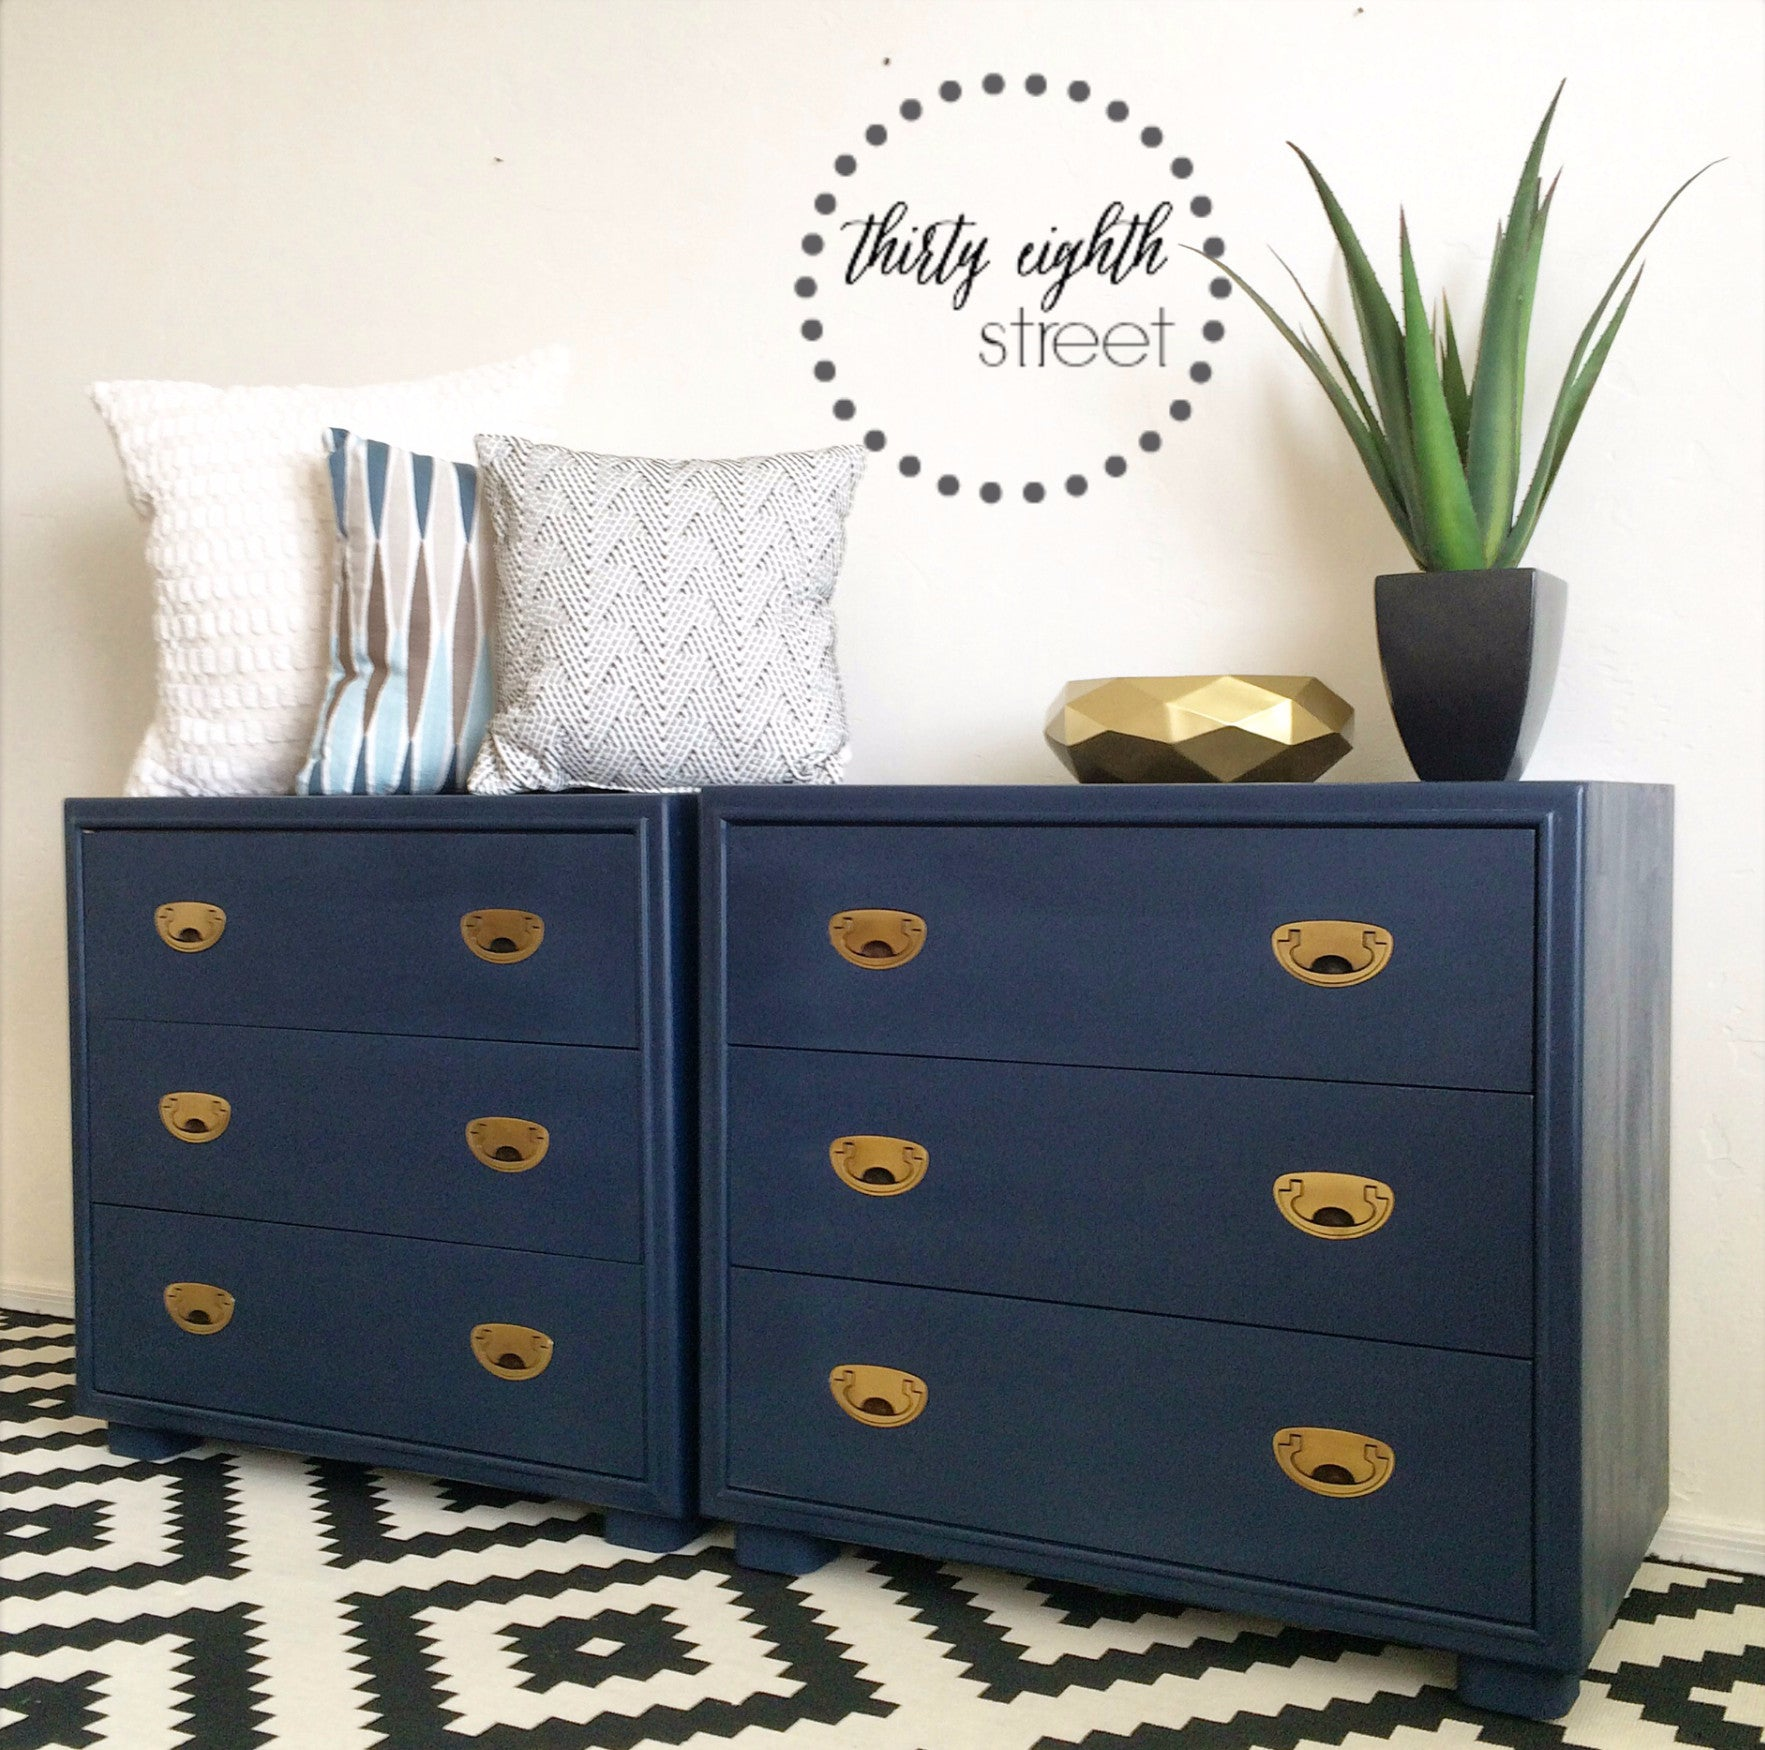 navy blue modern side tables painted with eco-friendly DIY furniture paint by Country Chic Paint